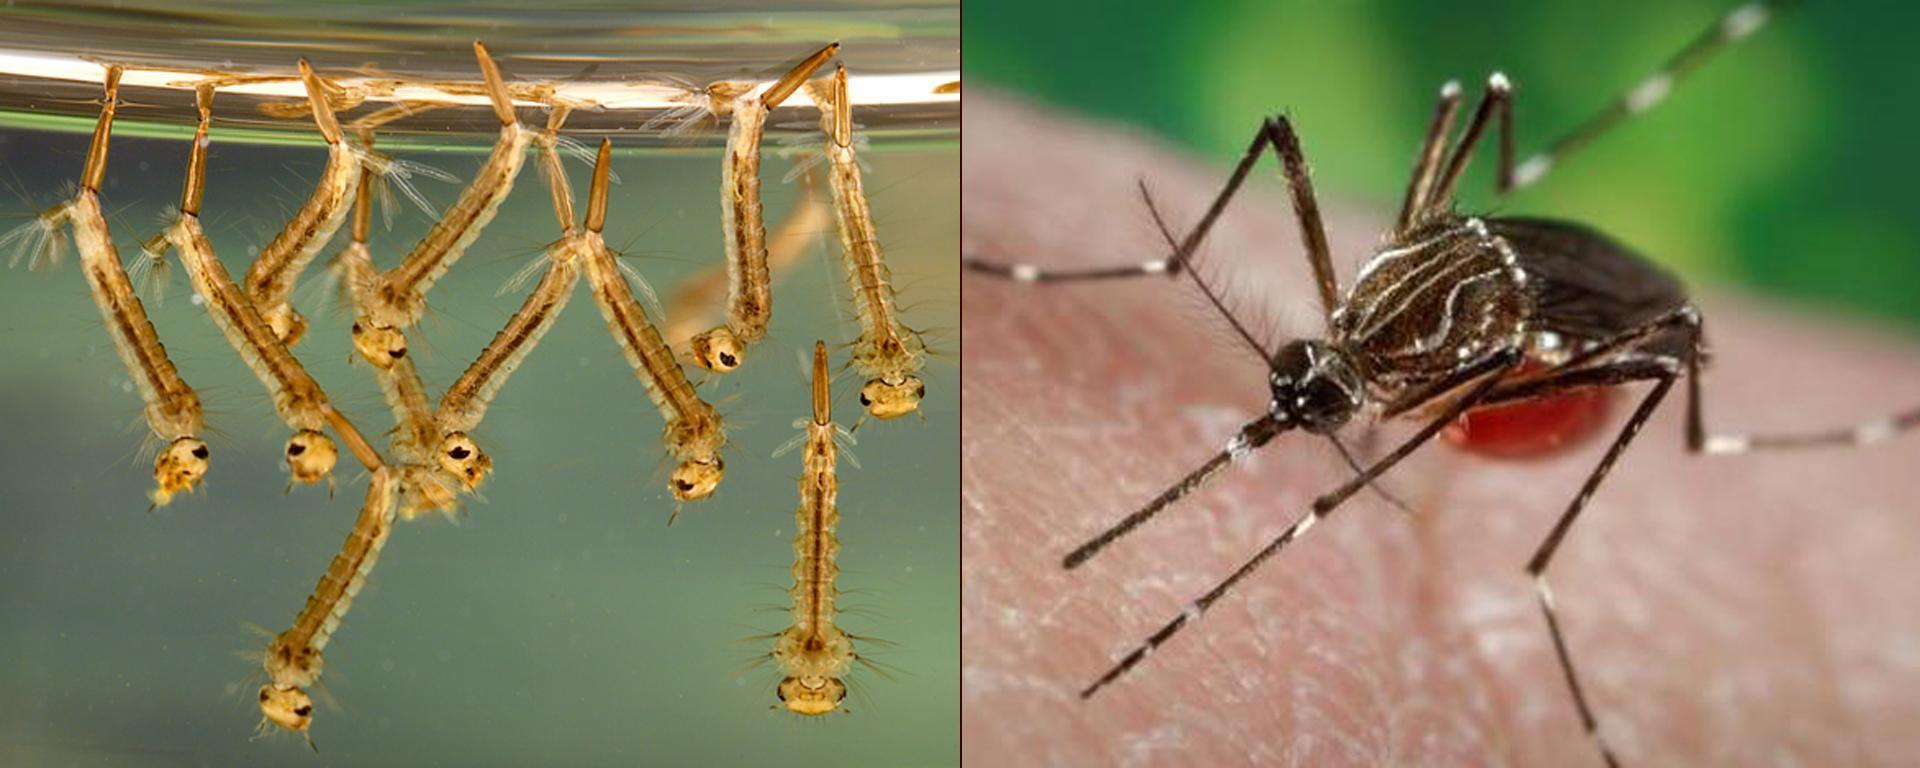 Mosquito Larvae and Adult